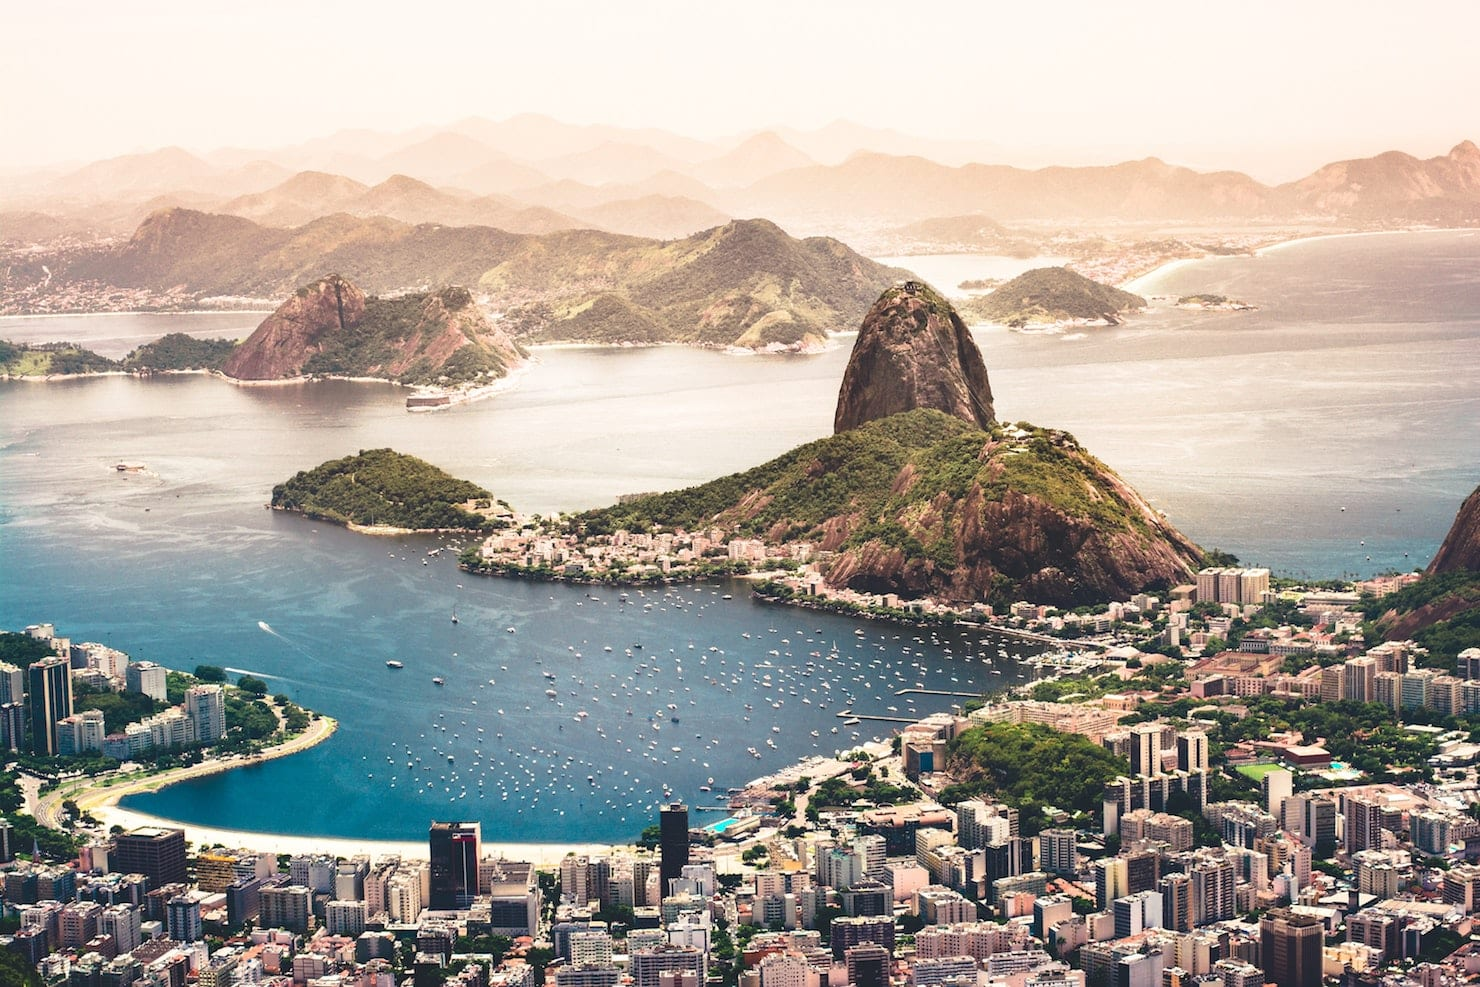 https://uluxeimages.uniqluxe.com/2020/09/wonderful-south-america-landscape-uniq-luxe-luxury-travel-holiday-tailor.jpg